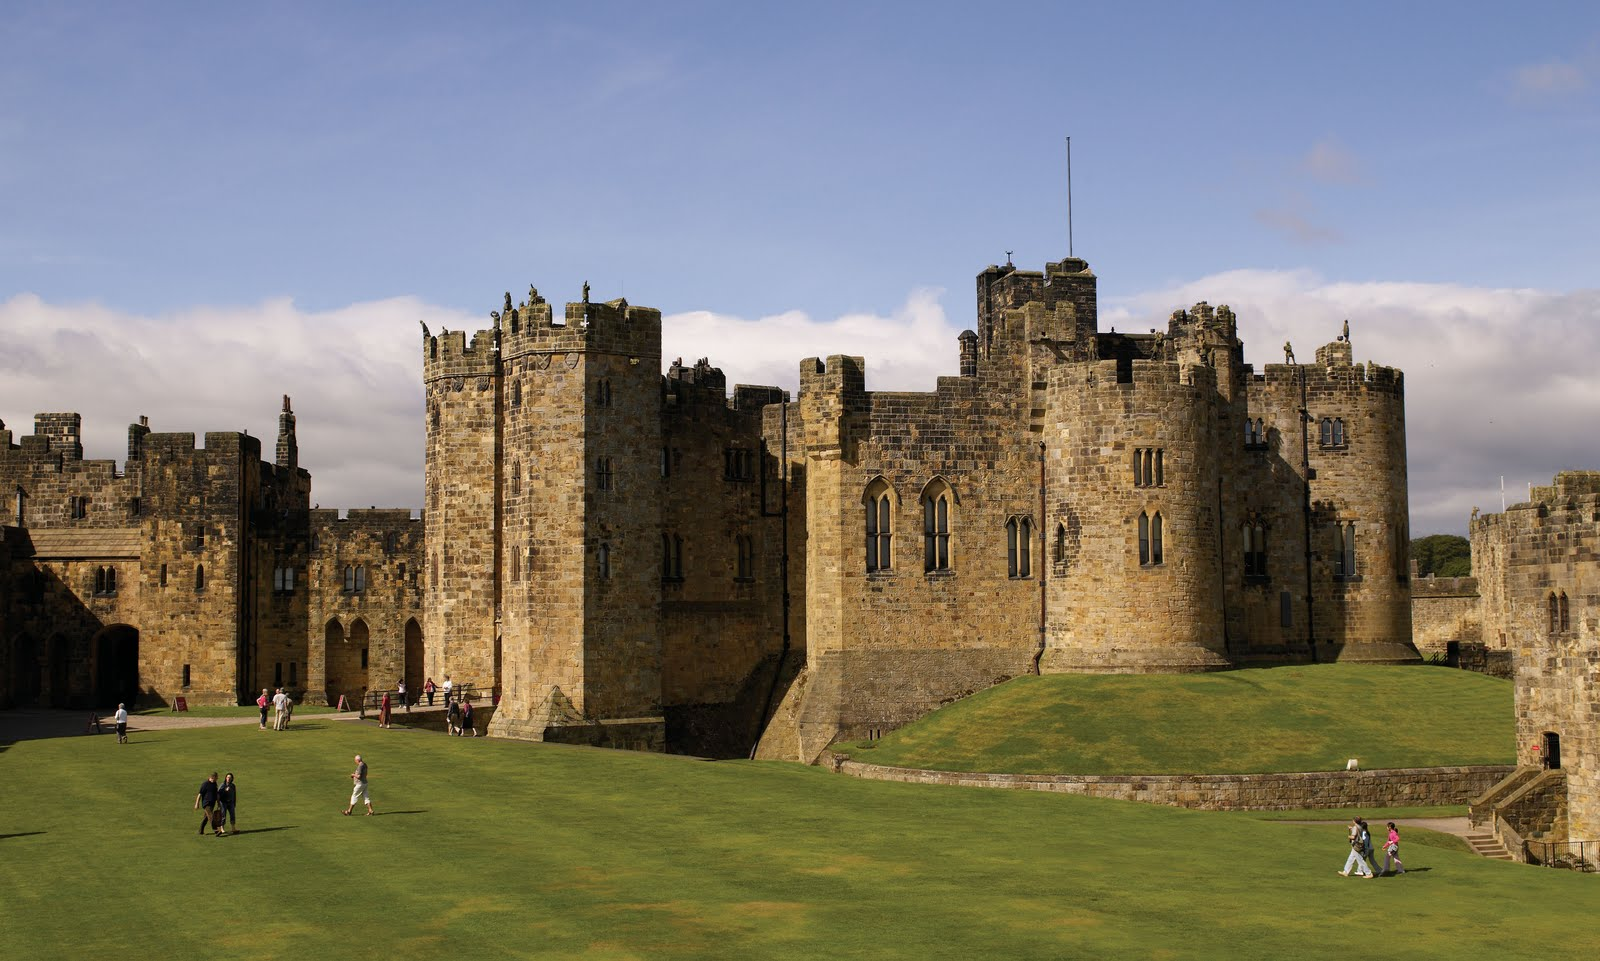 Alnwick dvorec, kjer so snemali prva dva Harry Potter filma